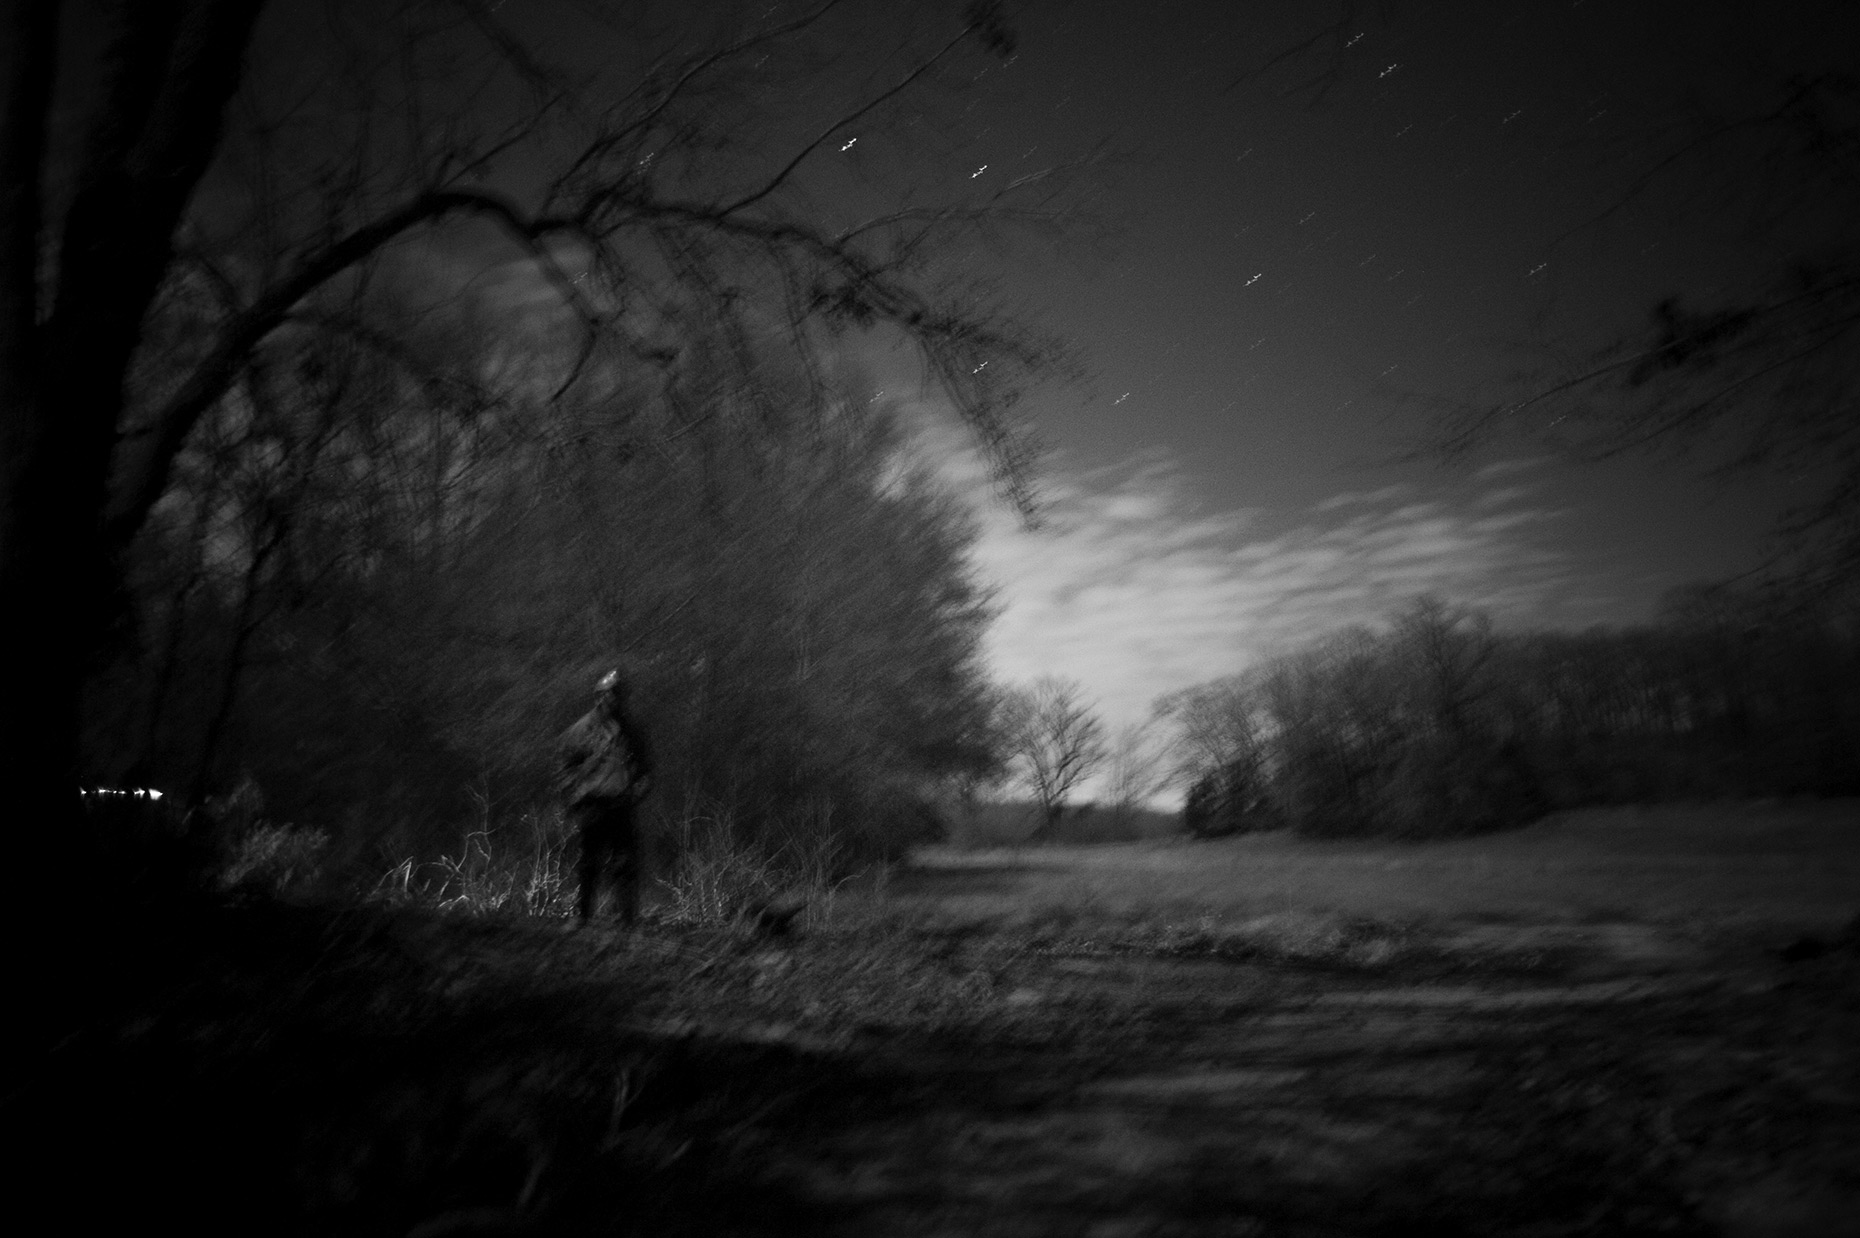 thibodeaux_coons_hunting_dogs_night_dark_woods_forest_south_rural_texas_sport_002.JPG